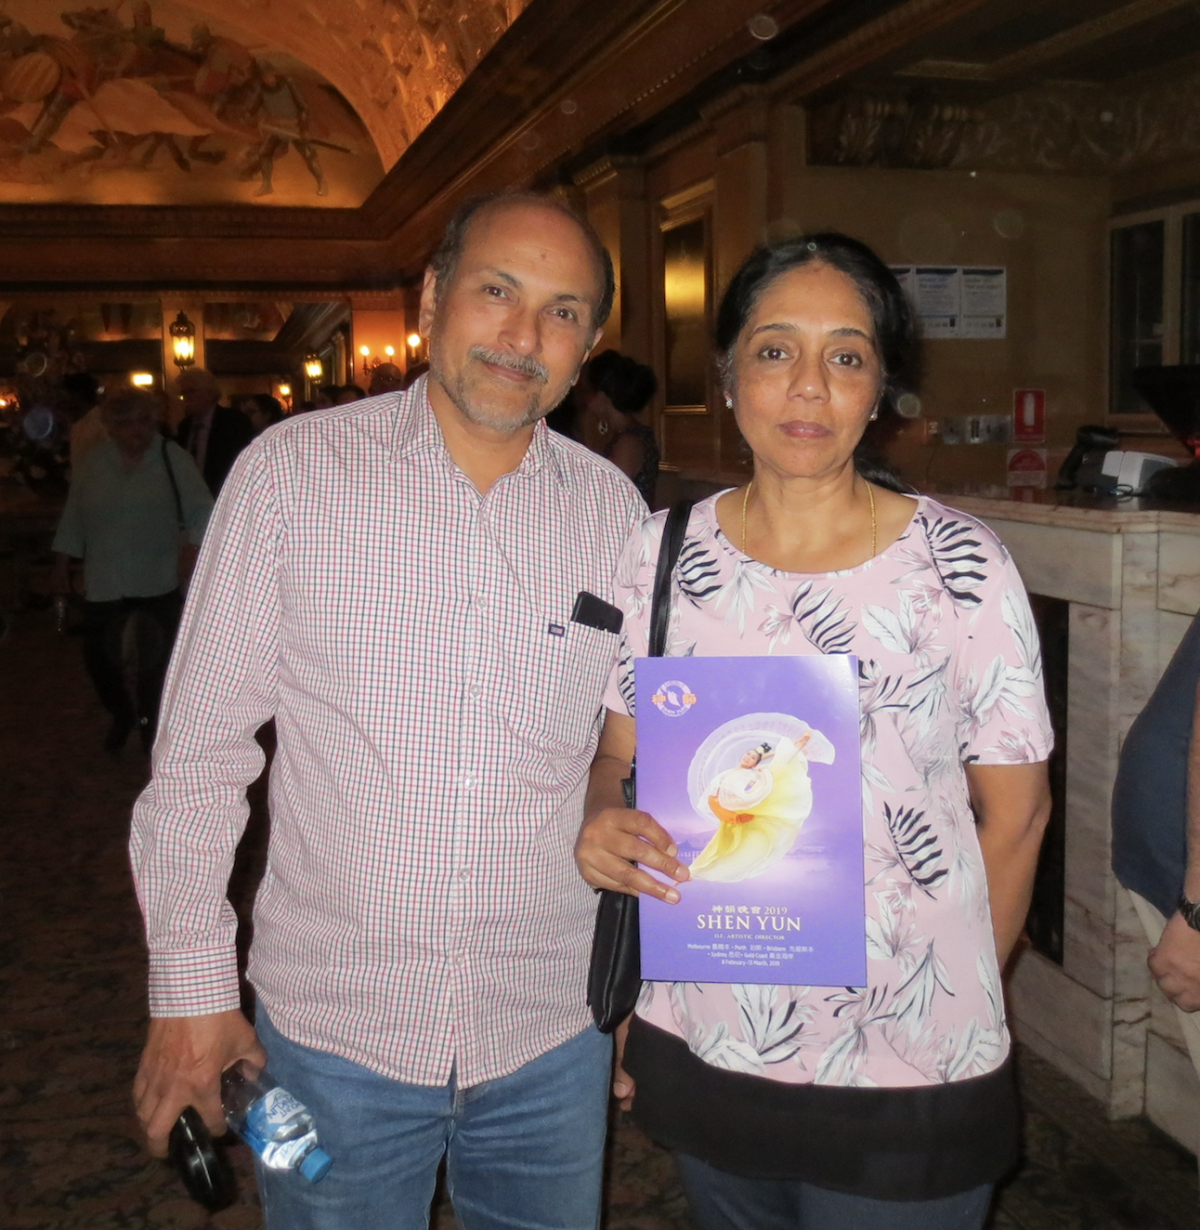 (L) Gopal Swaminathan, owner of GK Chemsource, with (R) Lakshmi at the Regent Theatre in Melbourne, Australia on Feb. 8, 2019. (Lucy Liu/Epoch Times)